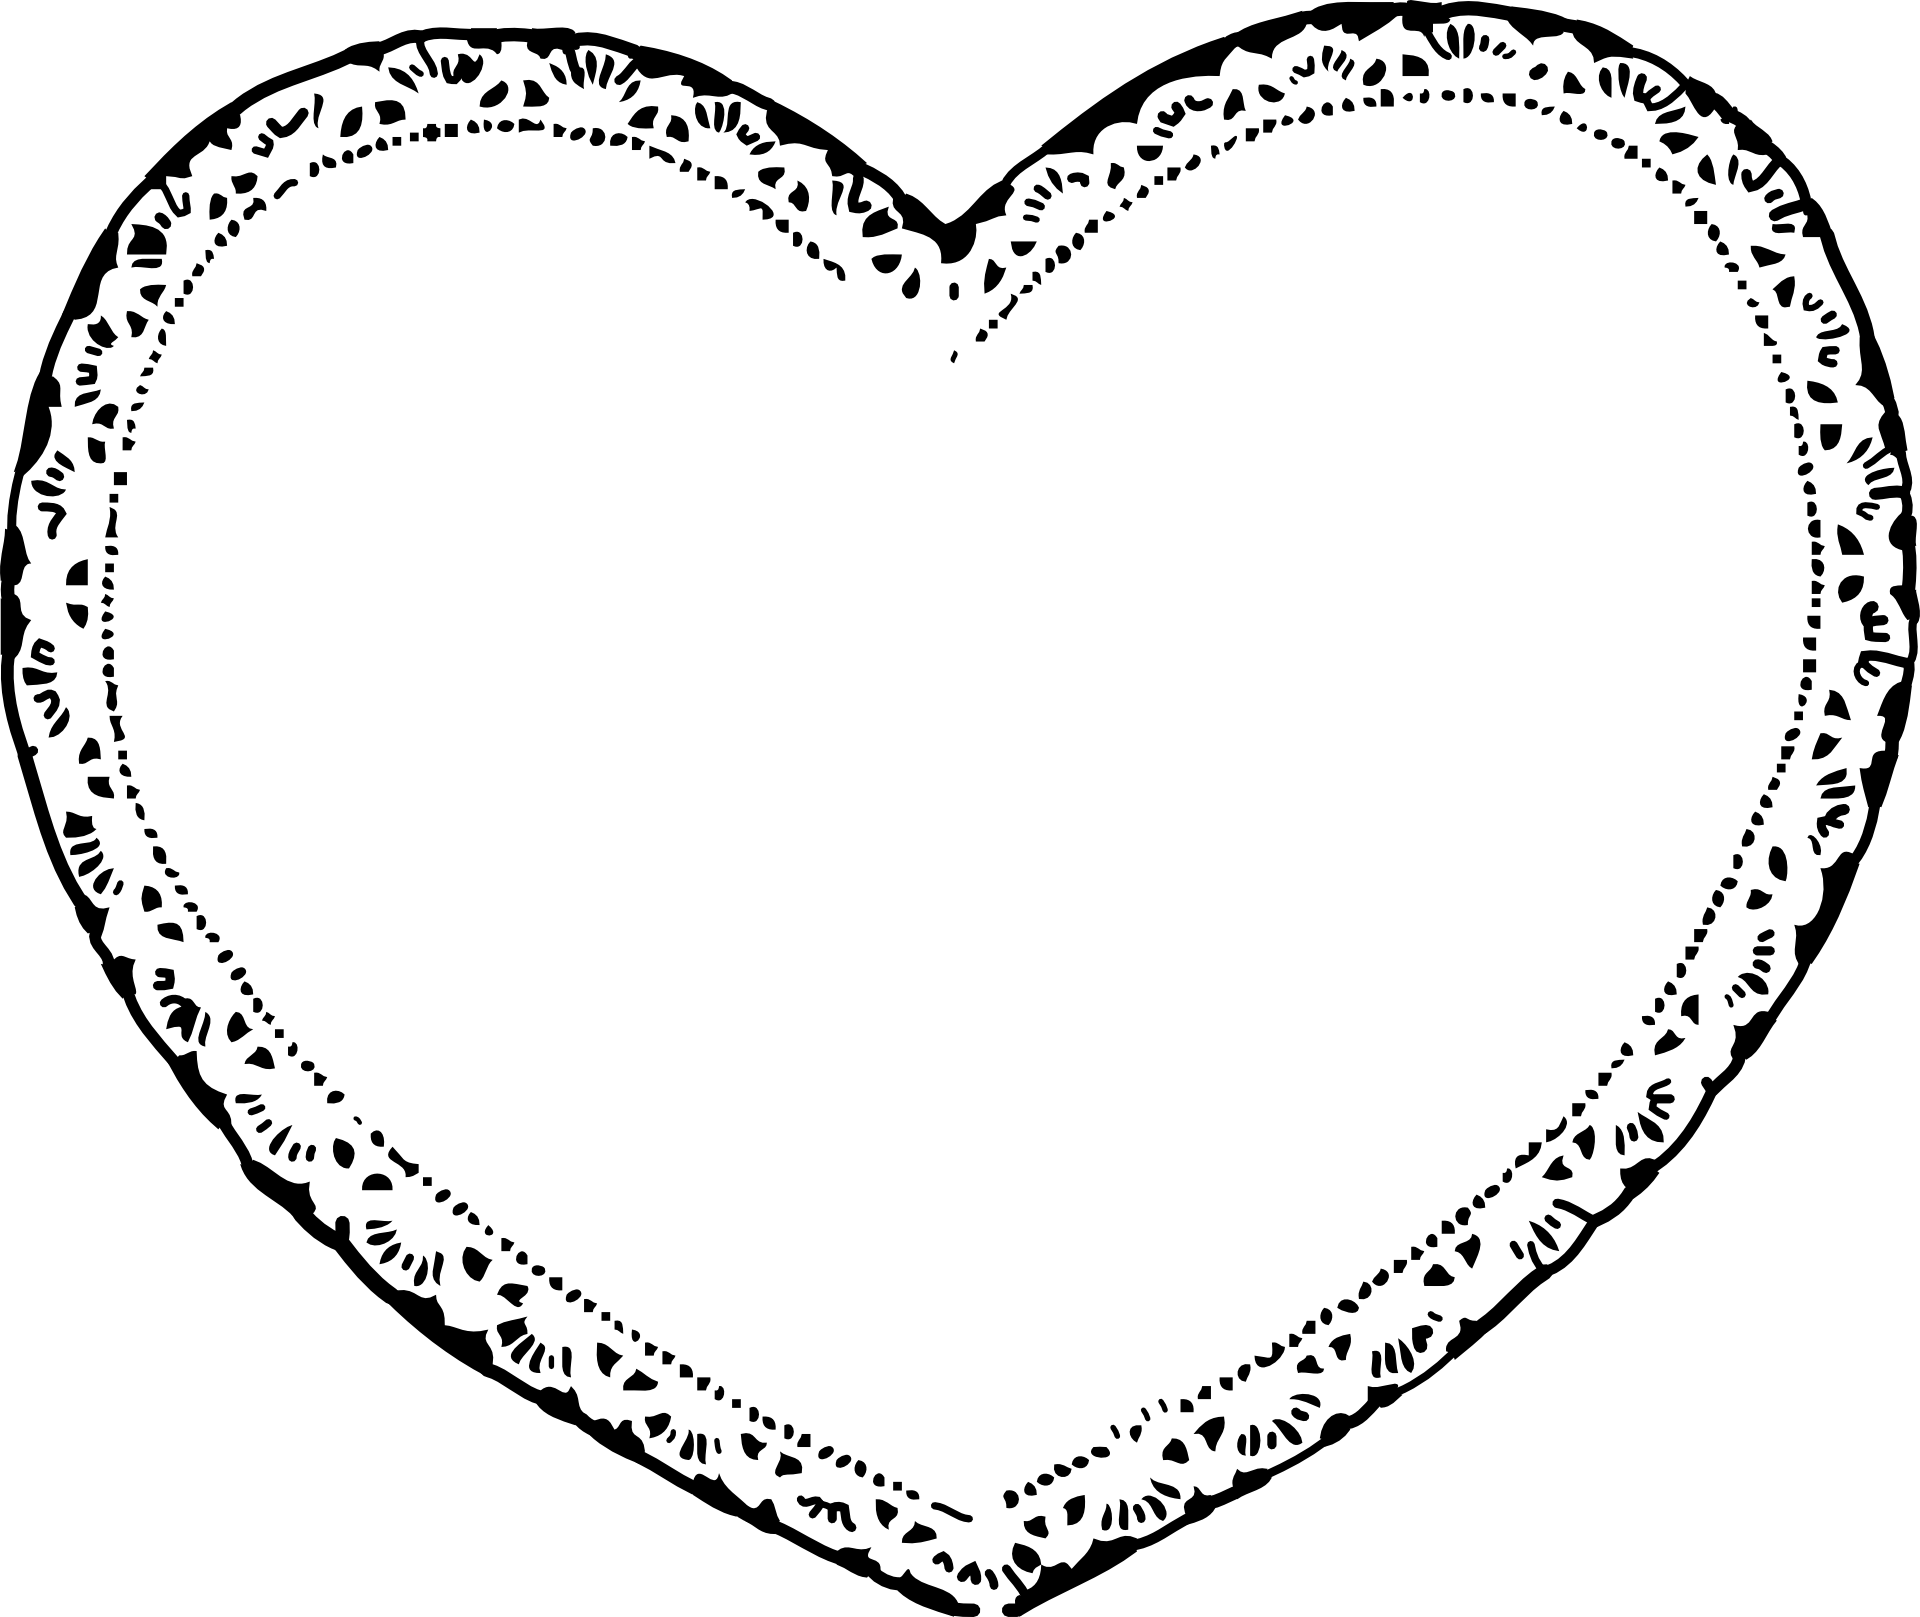 clipart free Valentine drawing heart shape. Valentines day black and